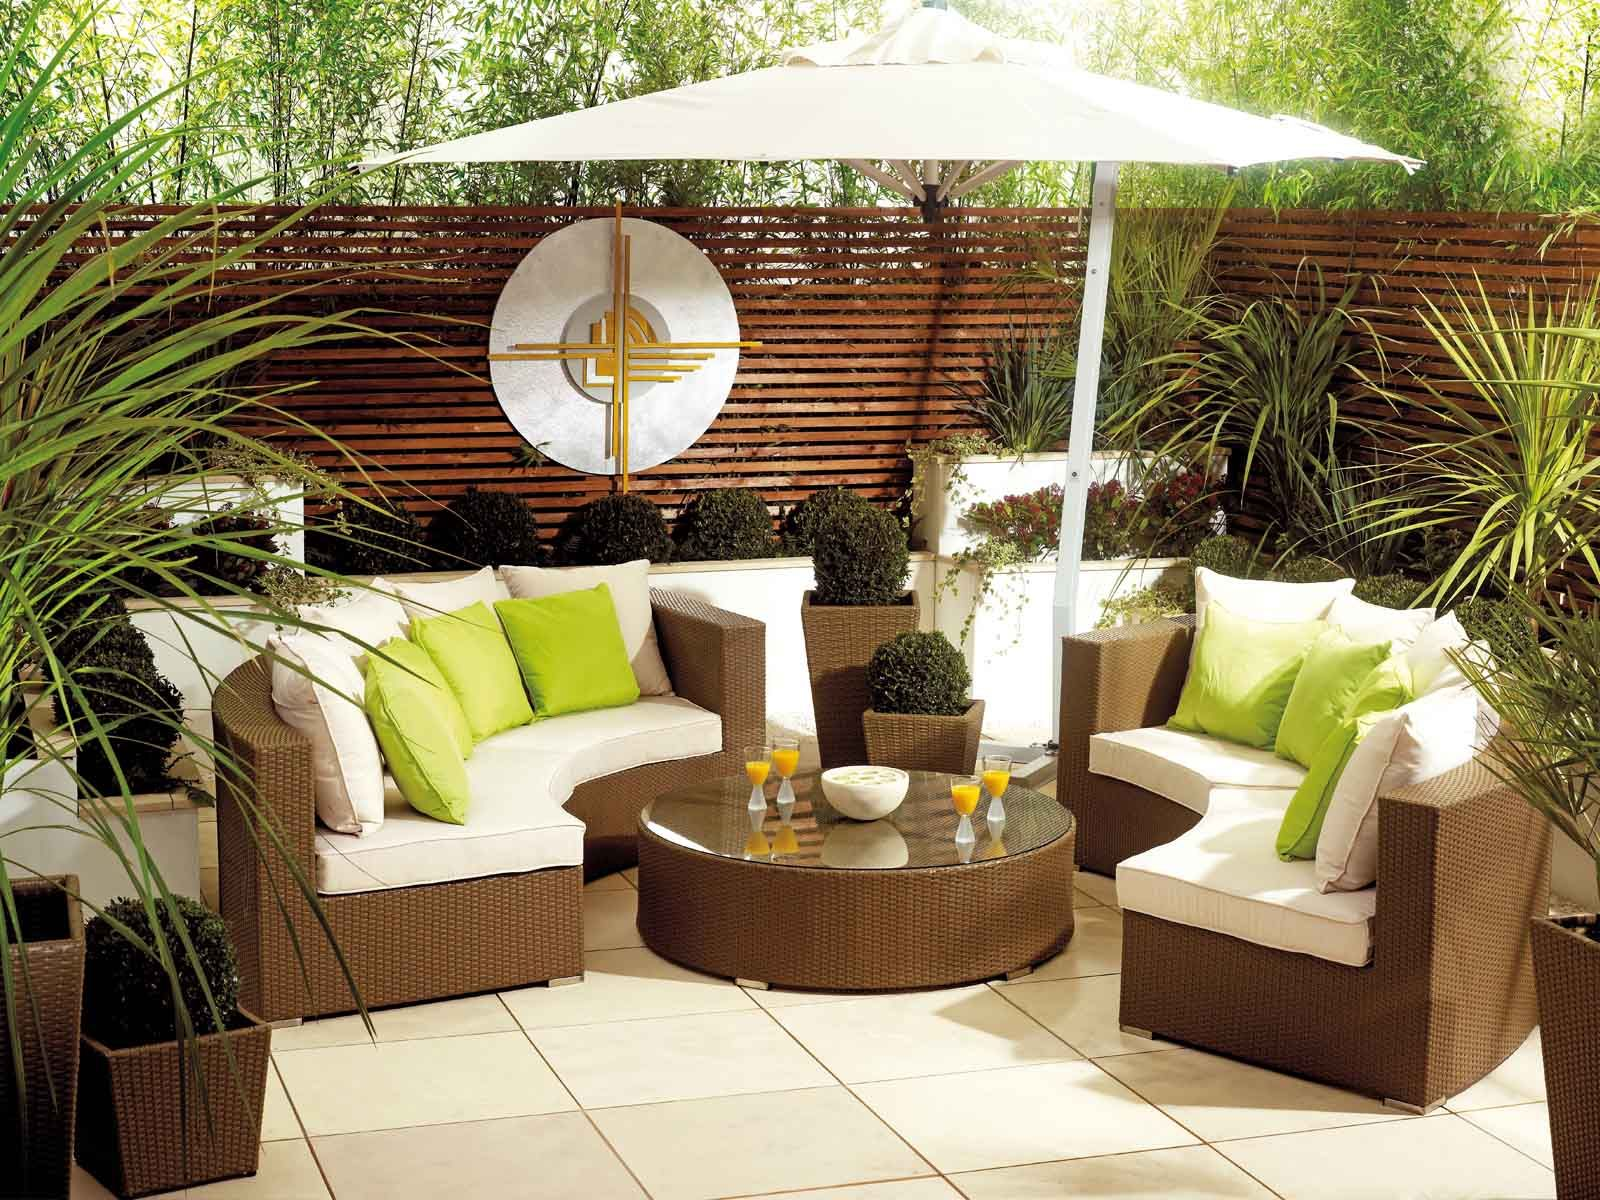 Modern Patio Furniture for Outdoor Sensation  Big lots patio